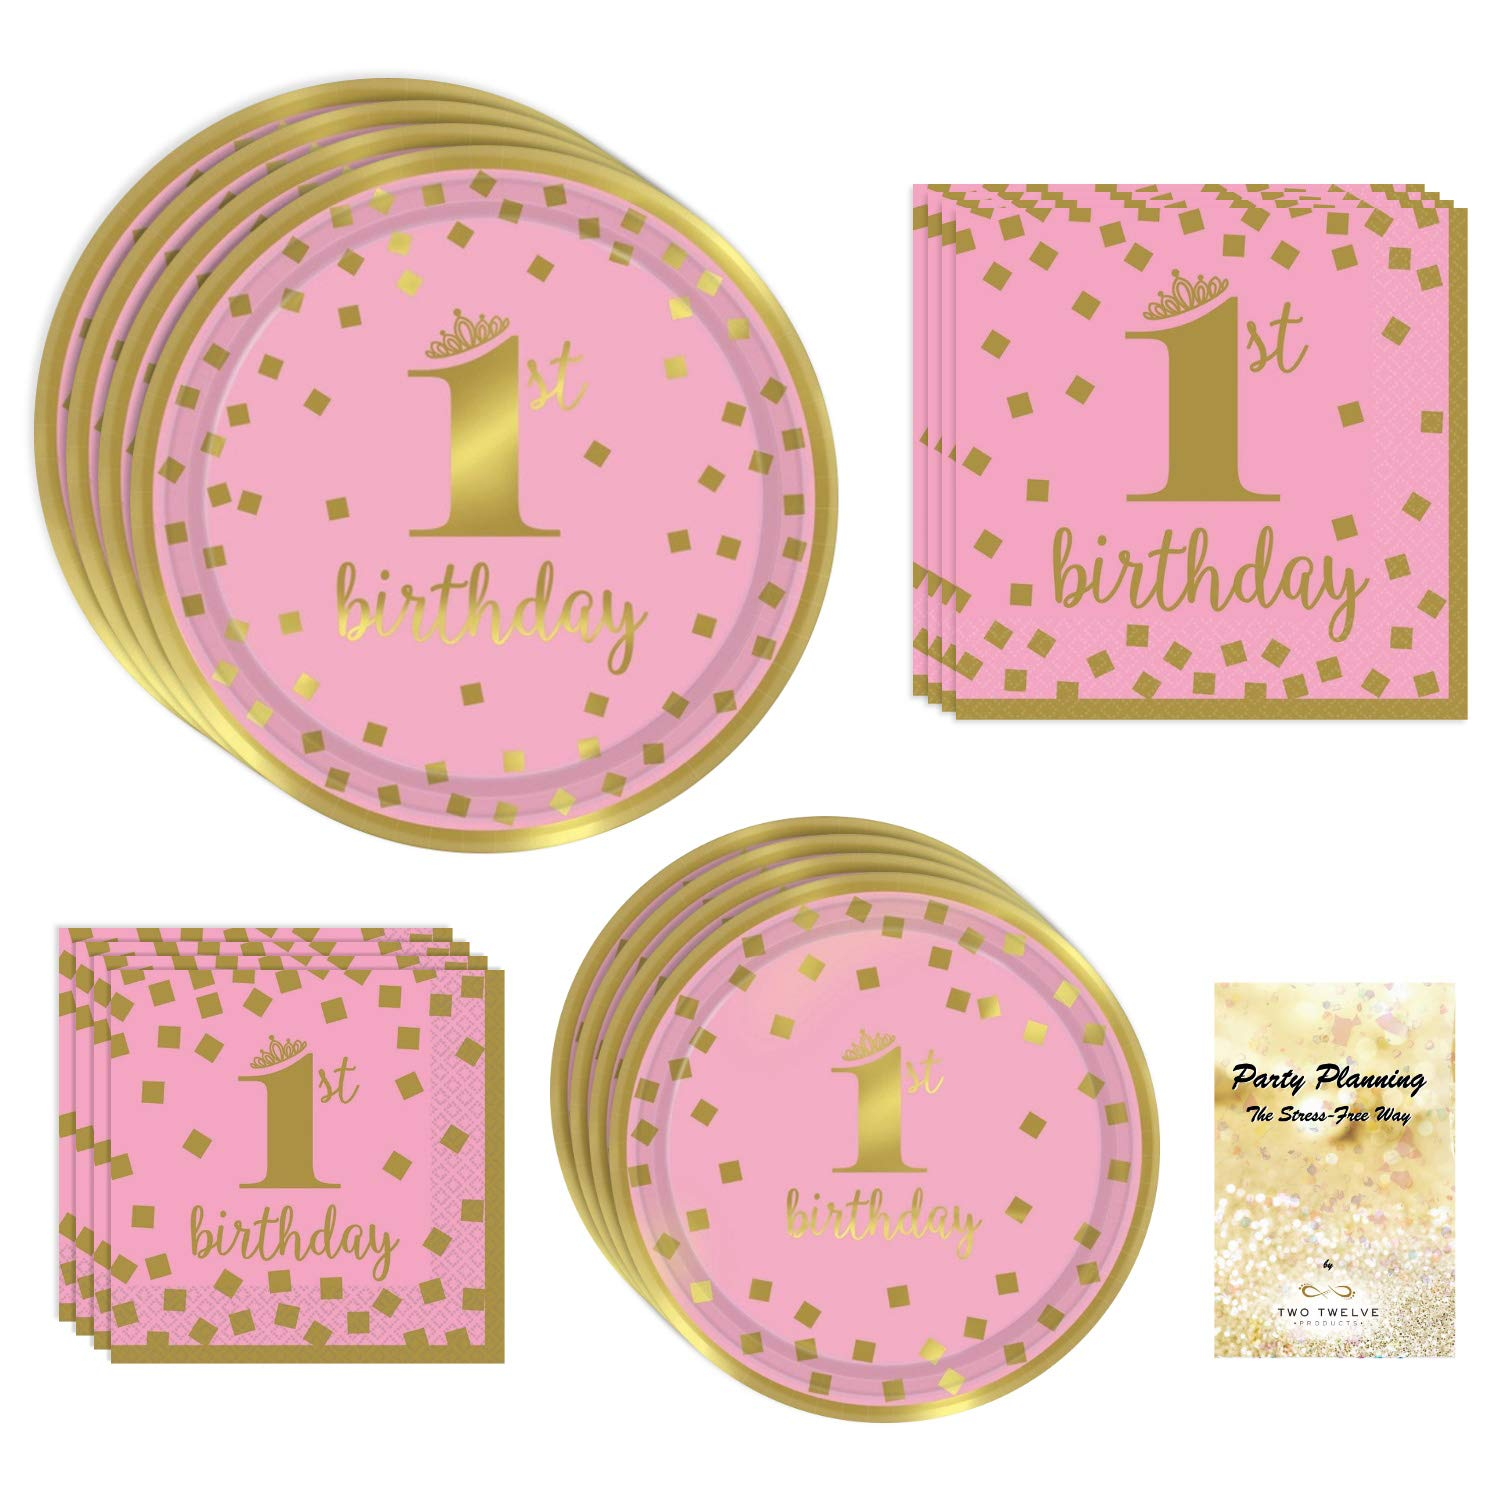 1st Birthday Girl Party Supplies, Pink and Gold Design, Bundle of 4 Items: Dinner Plates, Dessert Plates, Lunch Napkins and Beverage Napkins by TwoTwelve Products (Image #1)